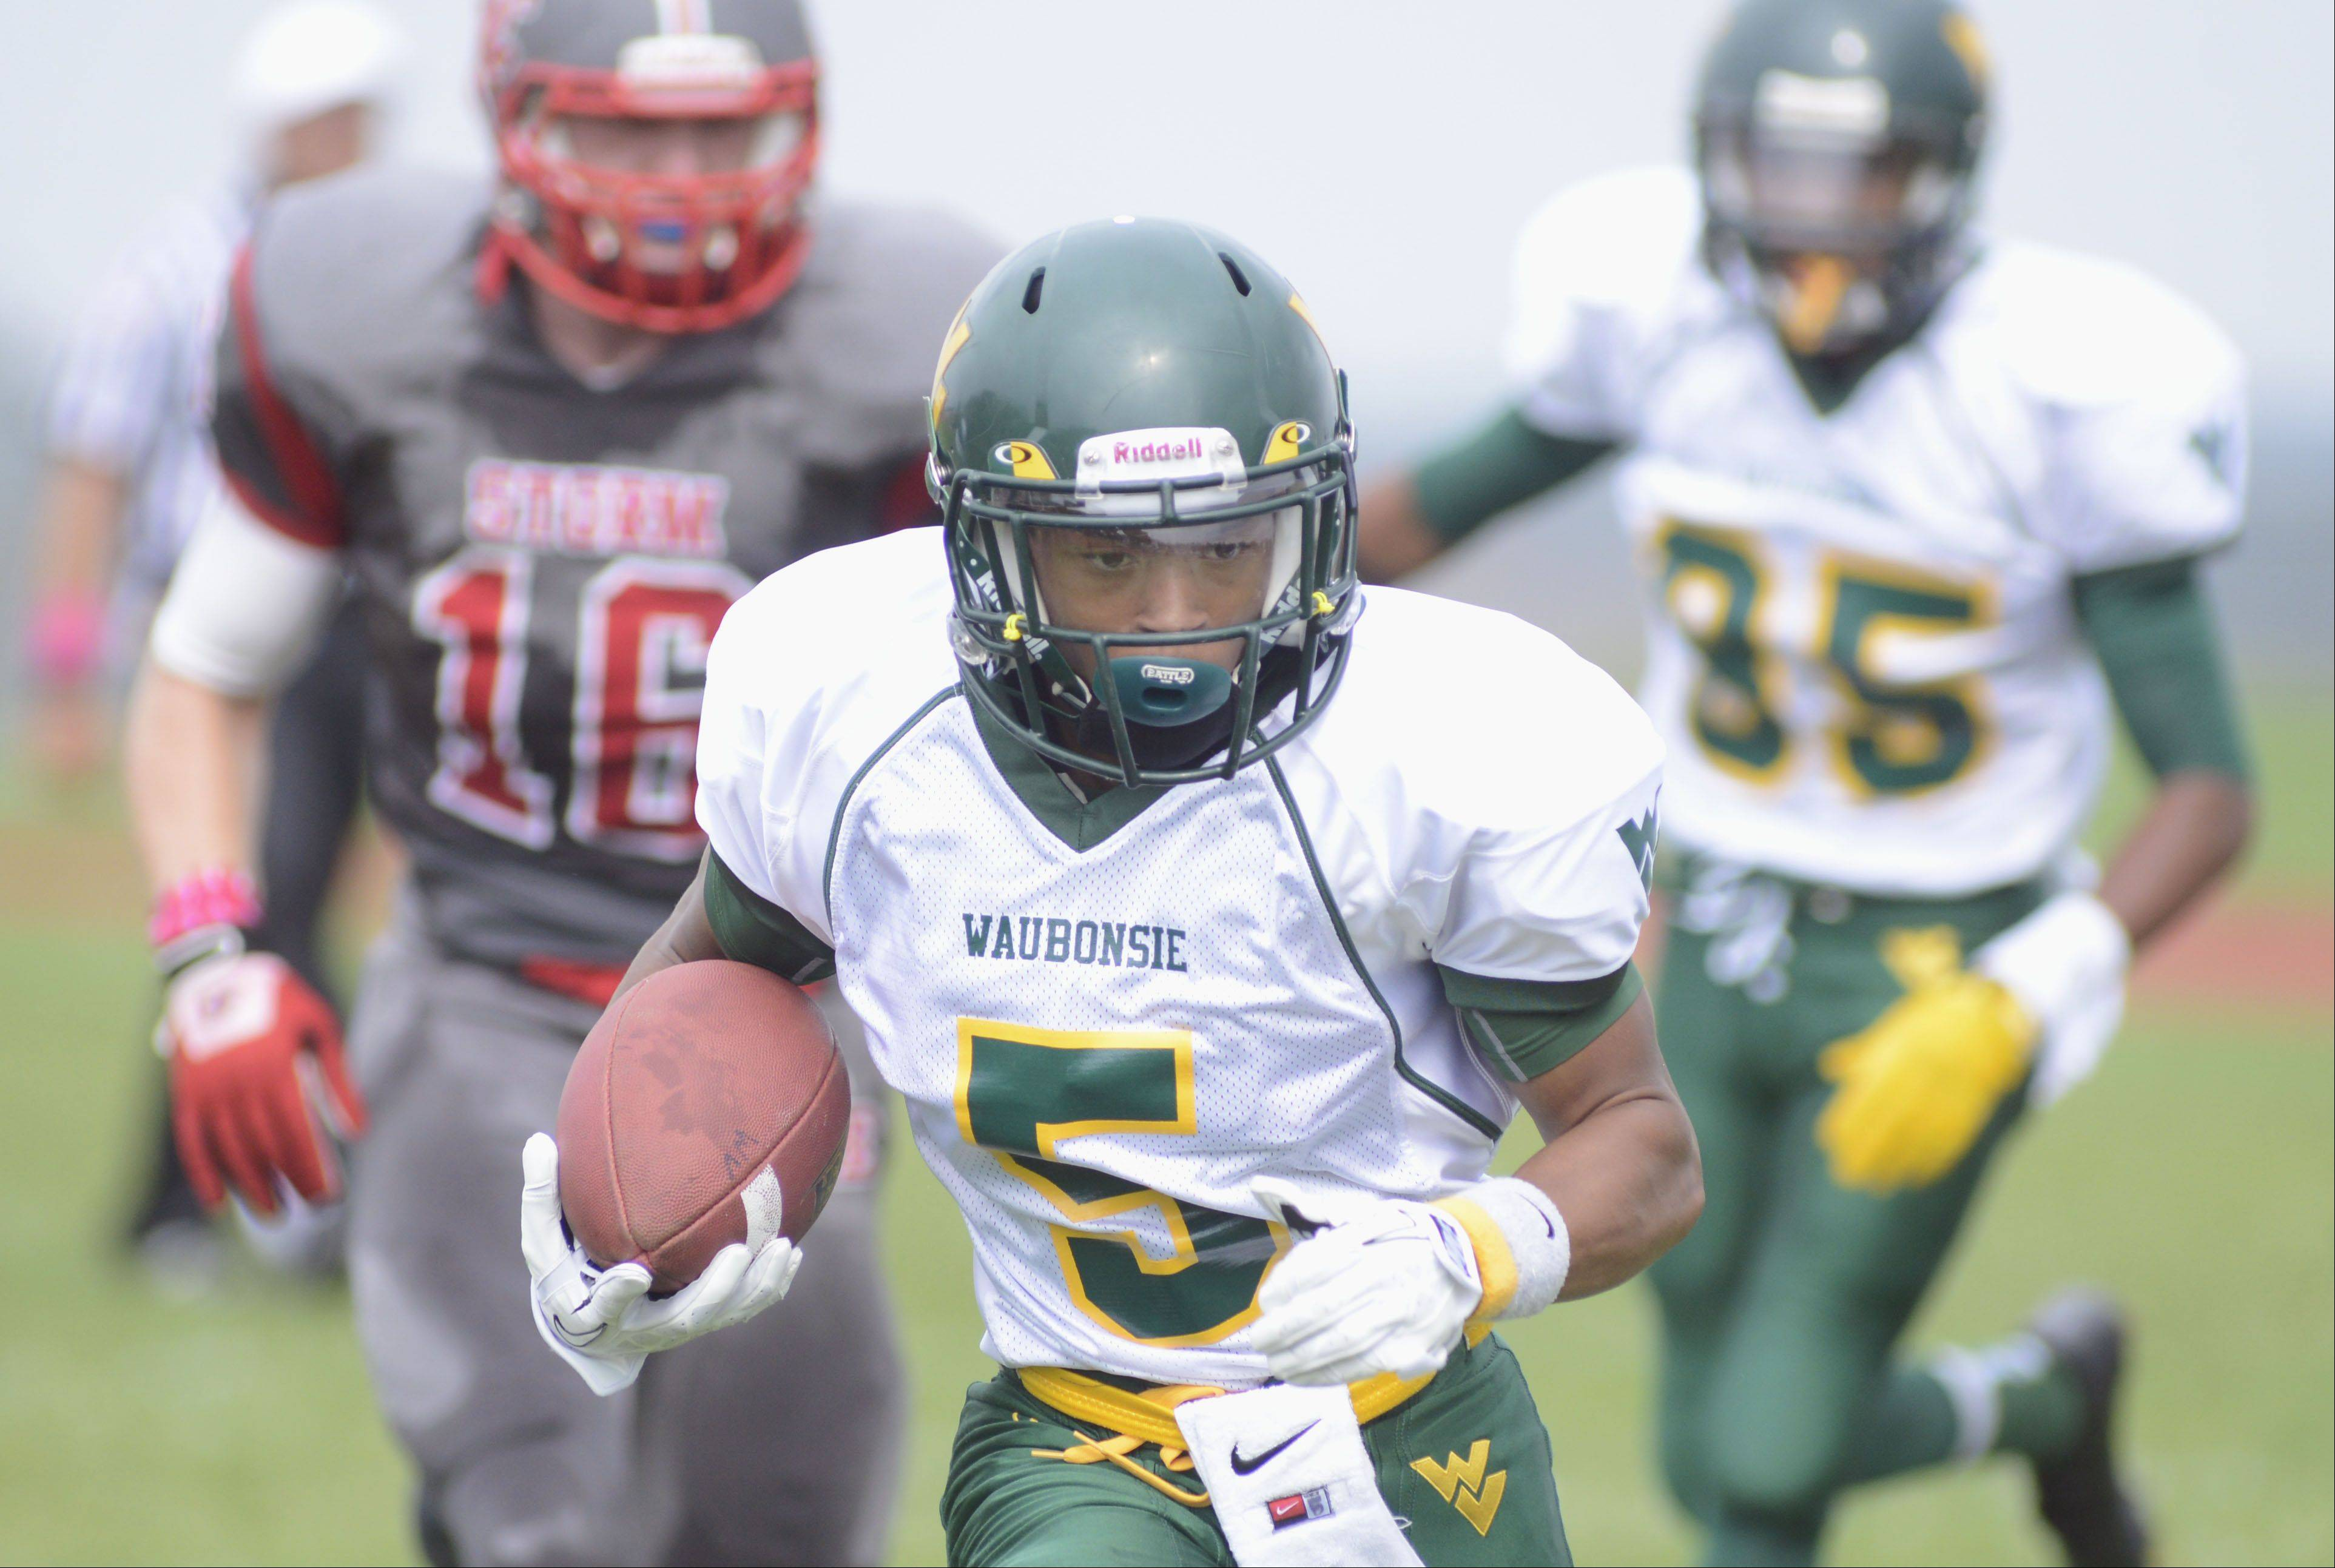 Waubonsie Valley's Devin Strickland makes his way to the end zone to score a touchdown in the first quarter on Saturday, October 5.